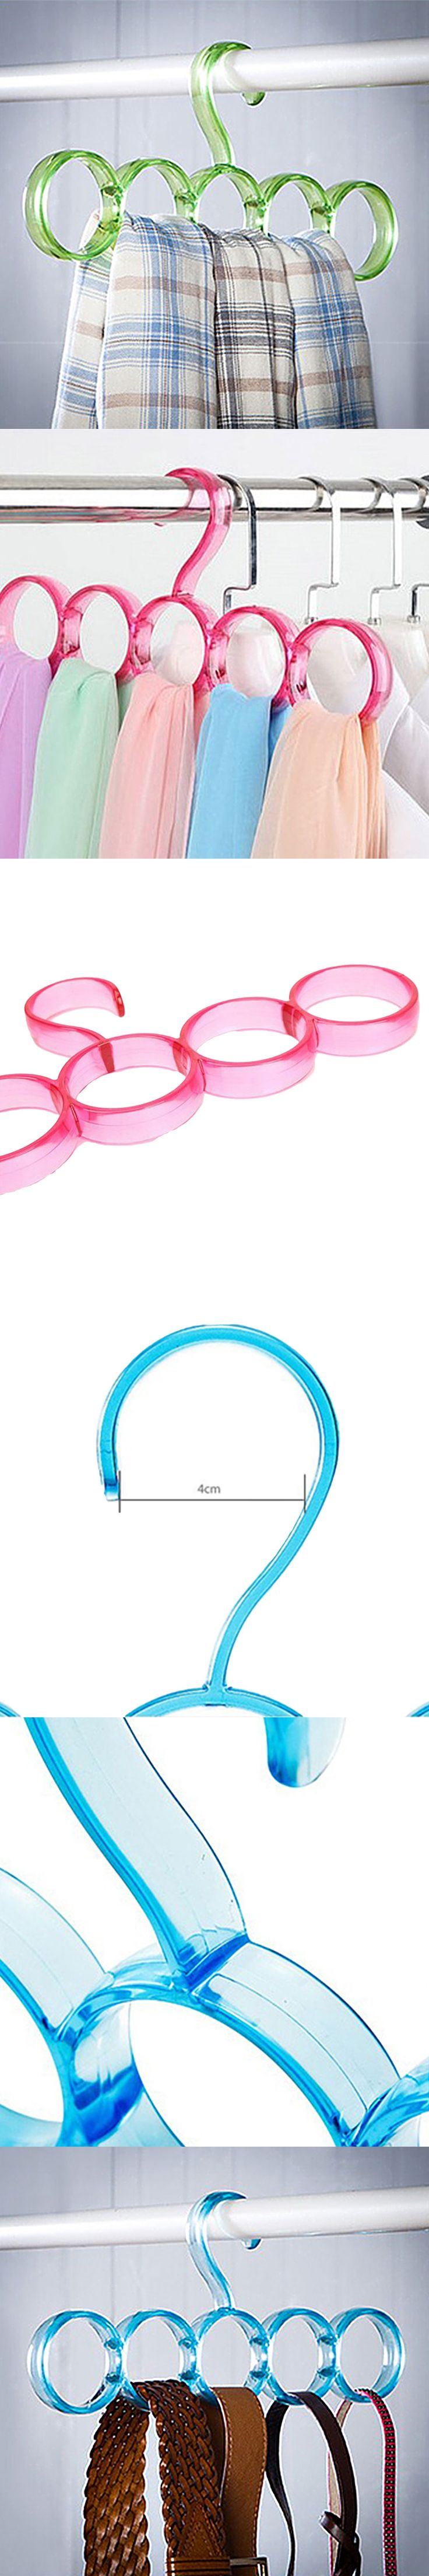 New Arrival 5-hole Ring Rope Slots Holder Colorful Simple Five Rings Scarf Racks Scarves Tie Hanger